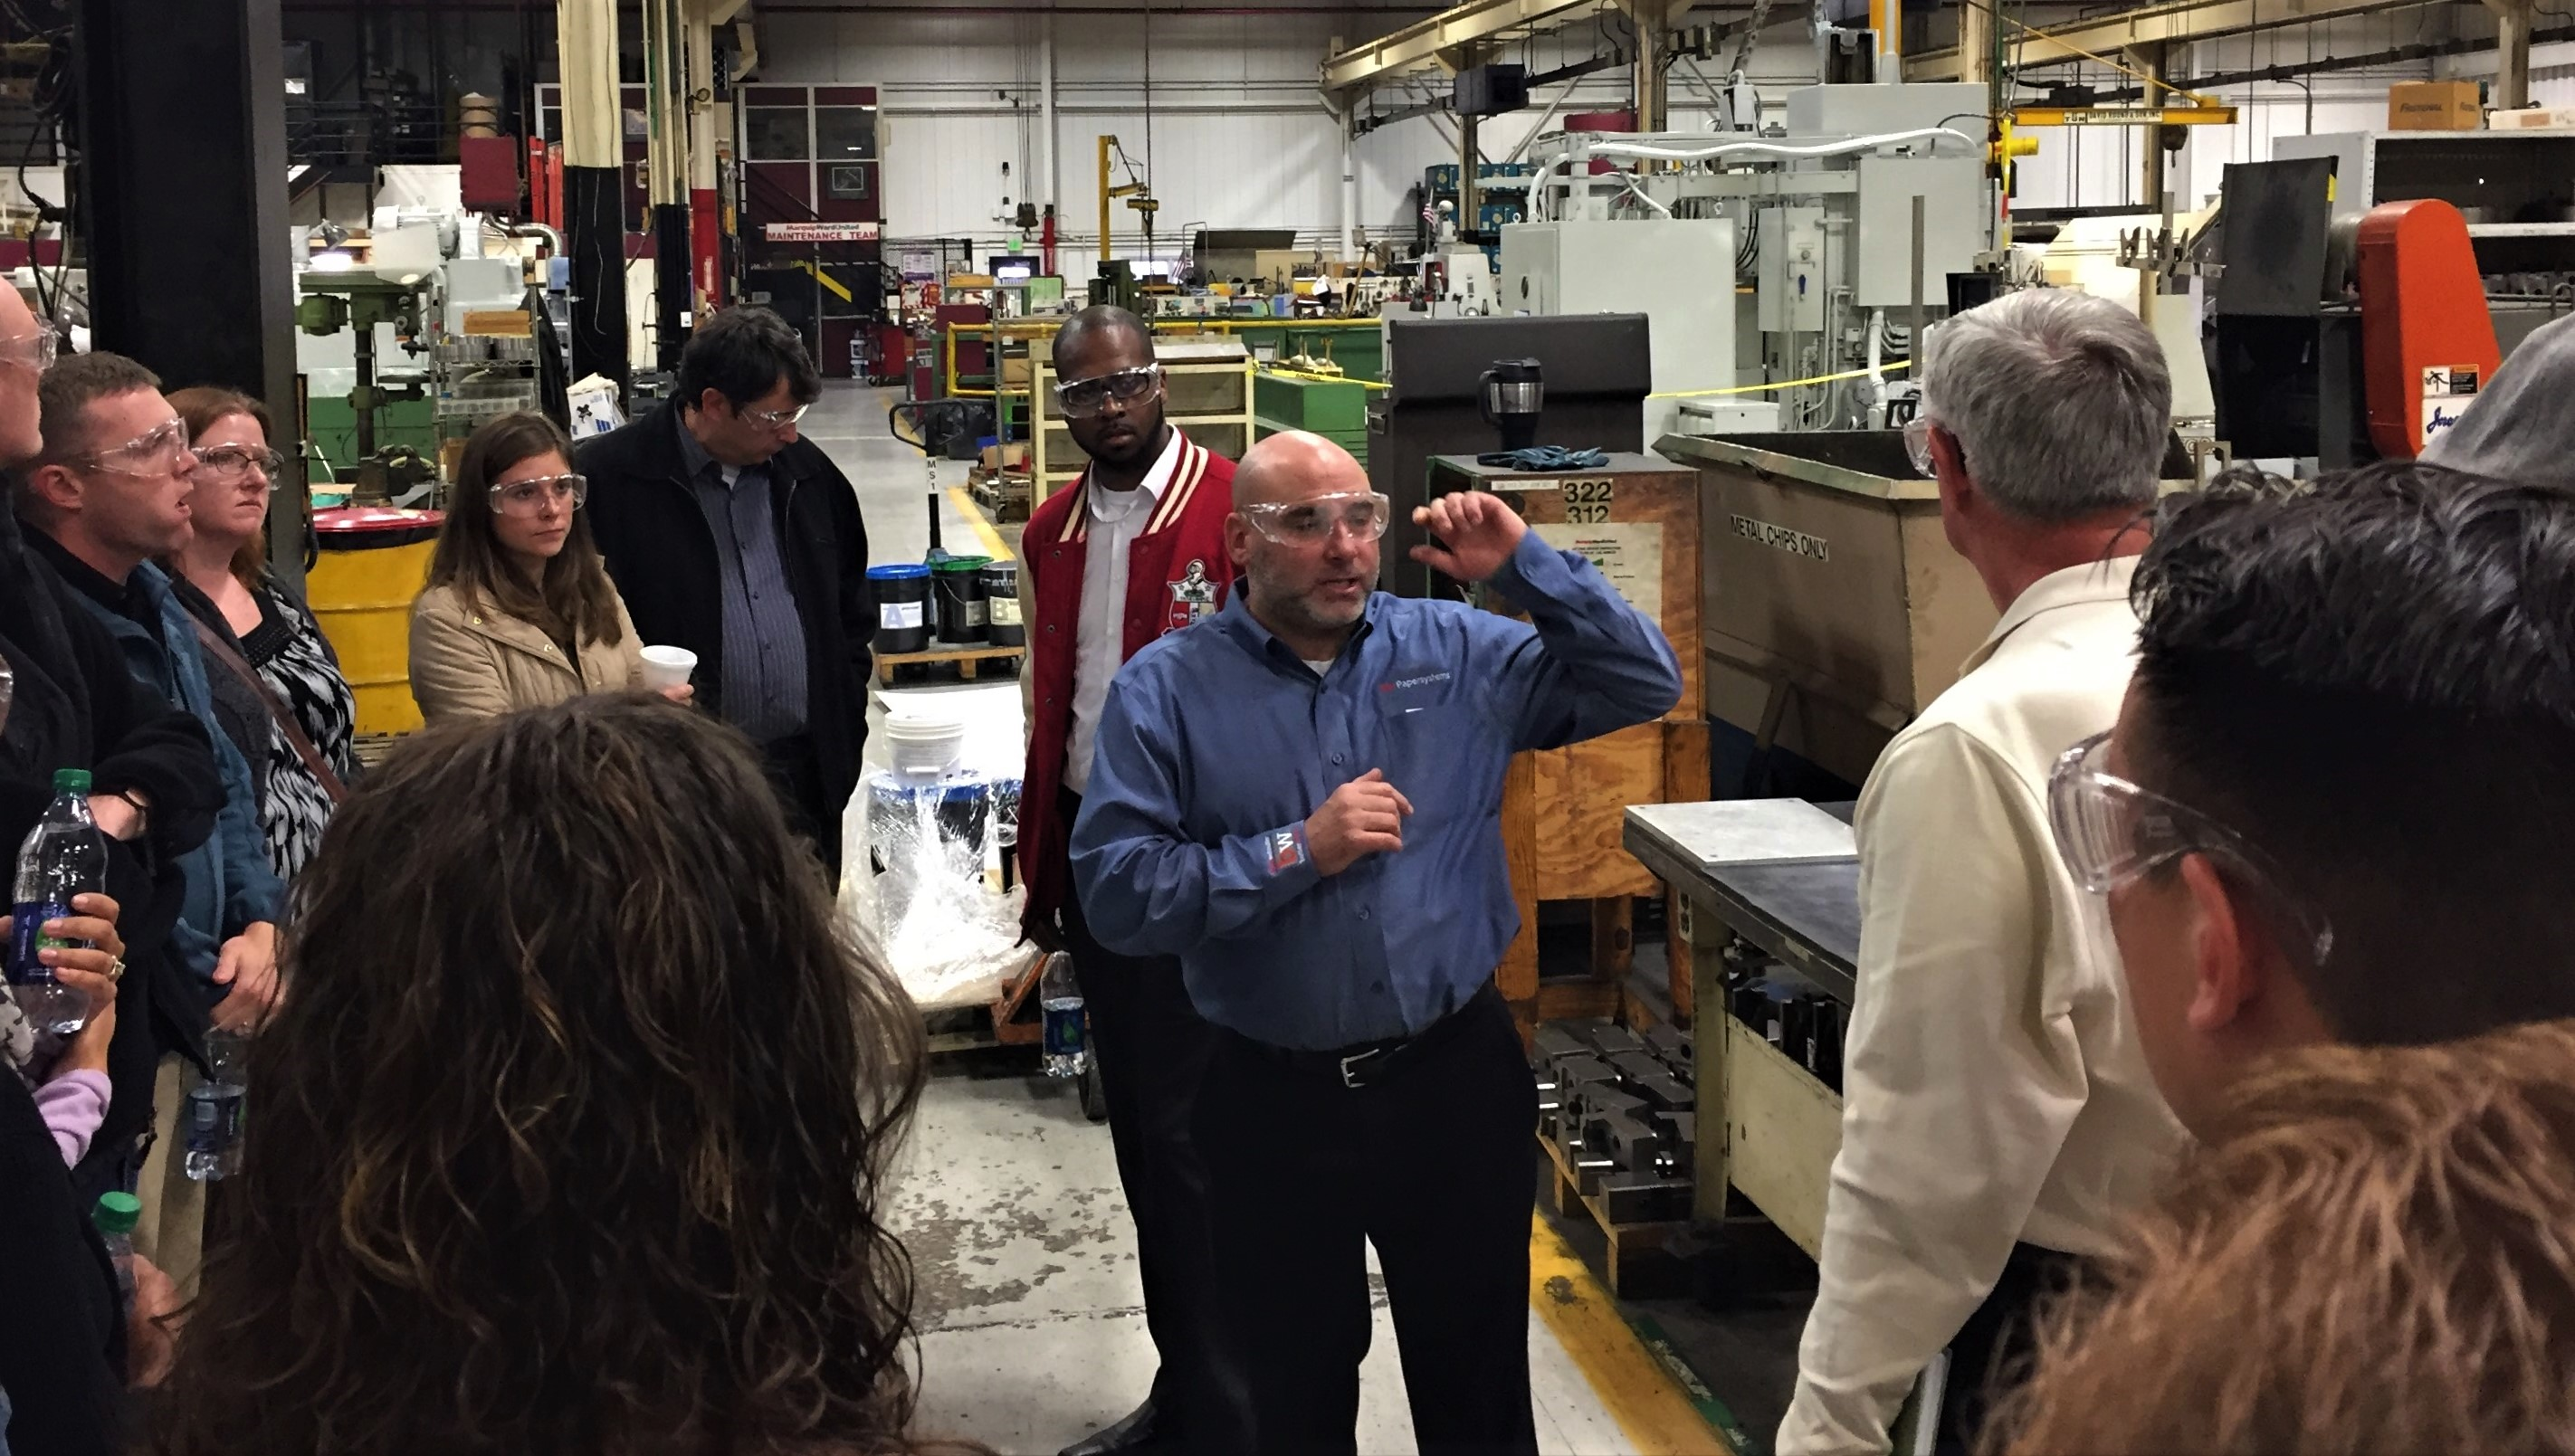 Lean Six Sigma Black Belt candidates from Aberdeen Proving Ground, Maryland, tour the Marquip Ward United factory Nov. 16, 2016, in Hunt Valley, Maryland. (Photo Credit: U.S. Army photo by Thom Hawkins, PEO C3T)